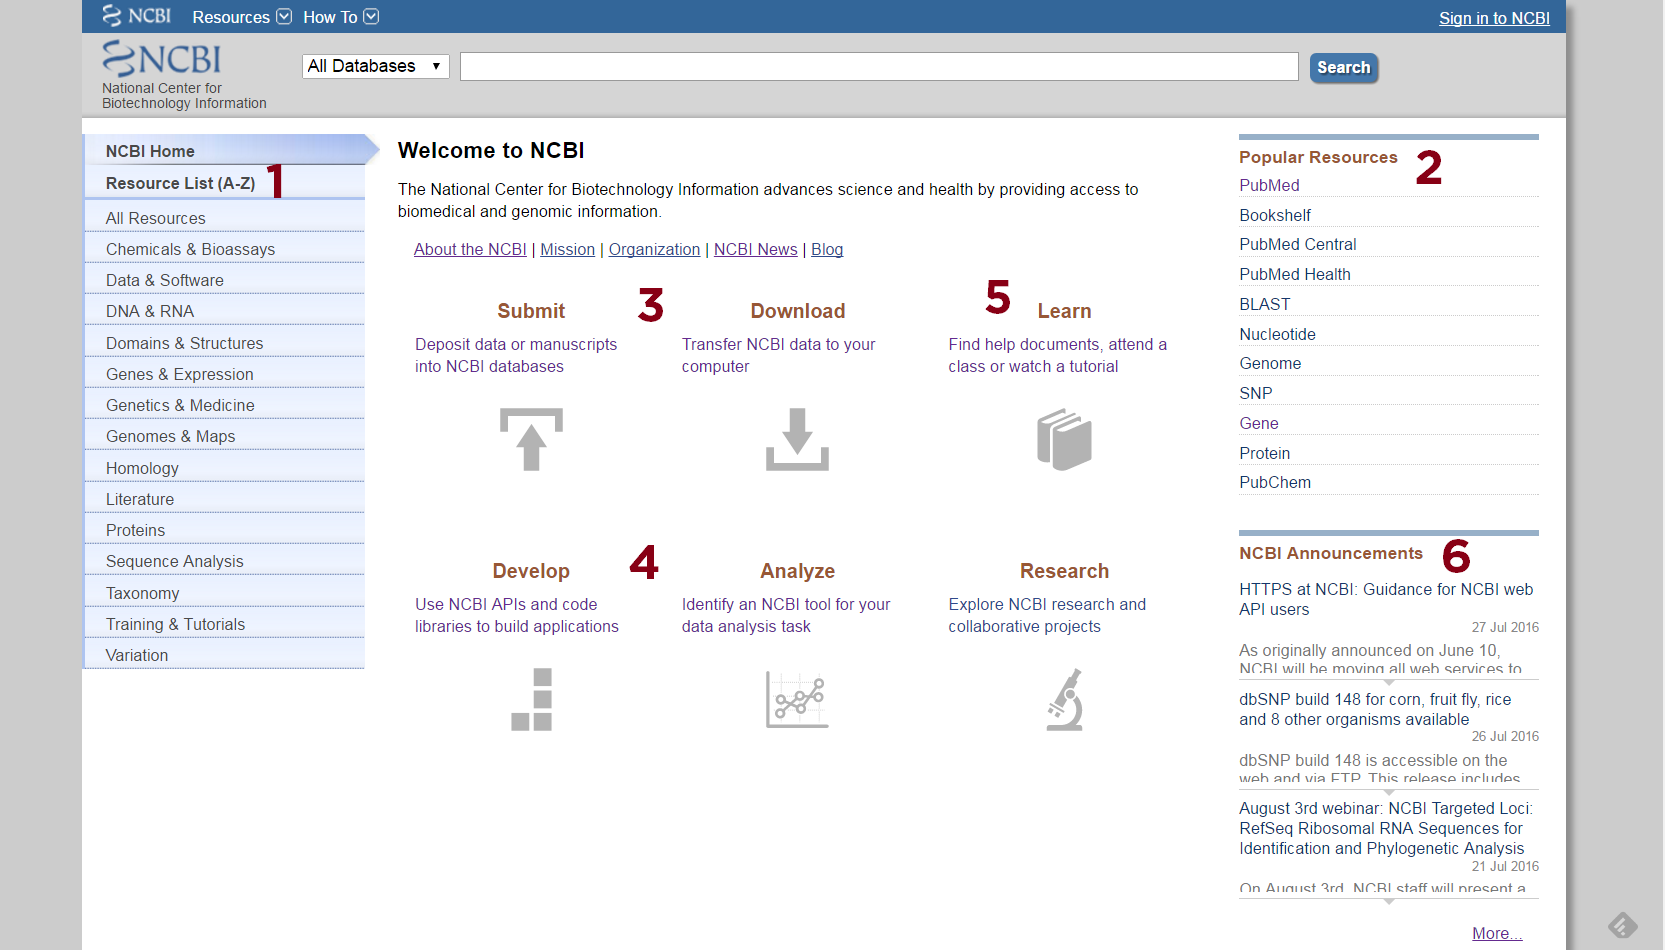 NCBI Home page with numbers 1-6 on respective page features